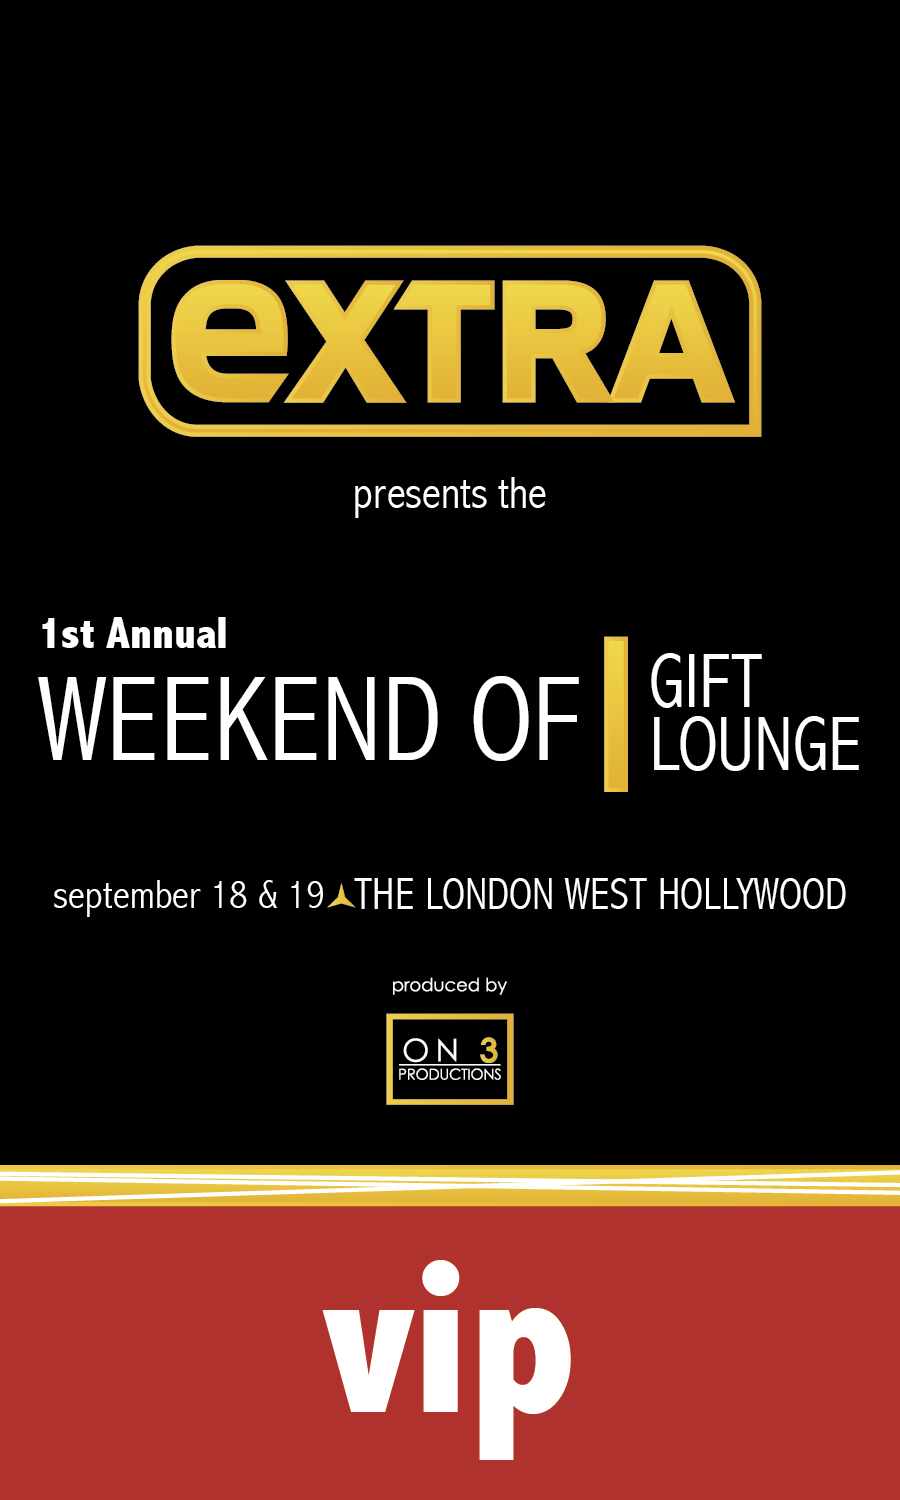 Extra TV Celebrity Gift Lounge